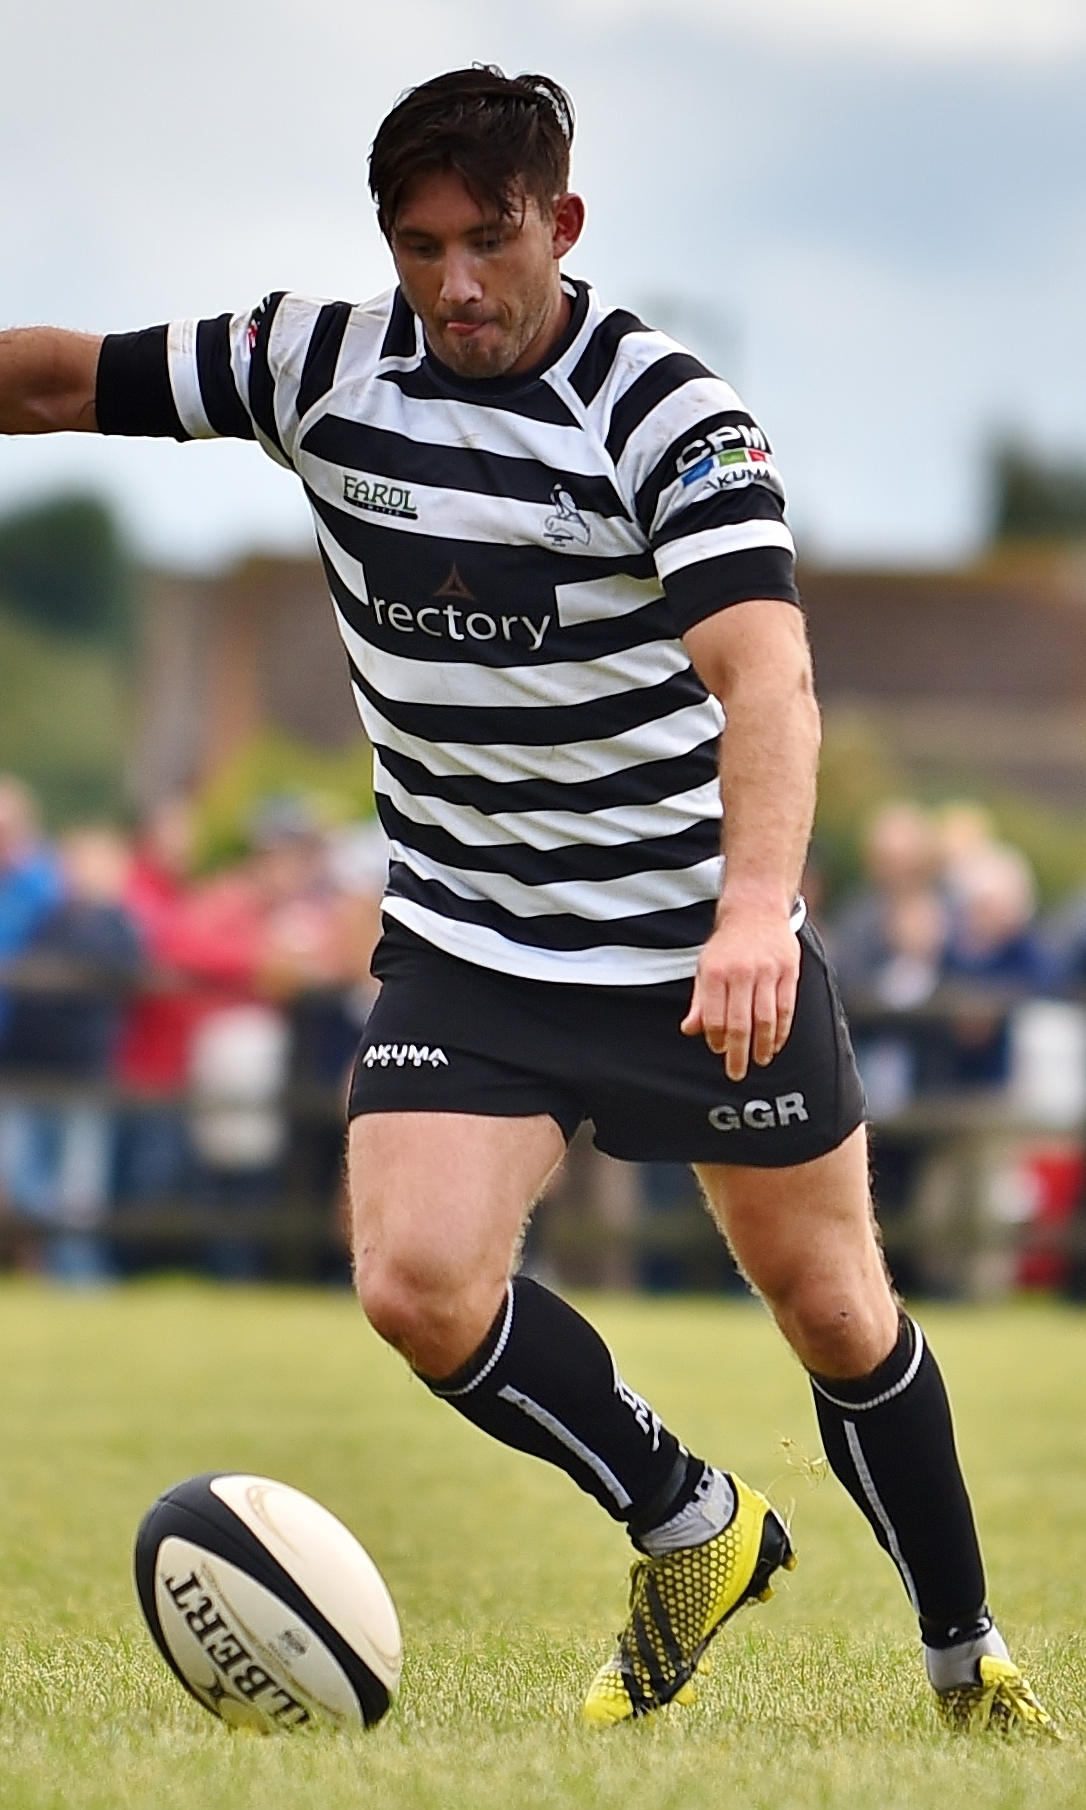 ACCURATE: Jonny Bentley kicked 11 points during Chinnor's victory over Cinderford Picture: Aaron Bayliss